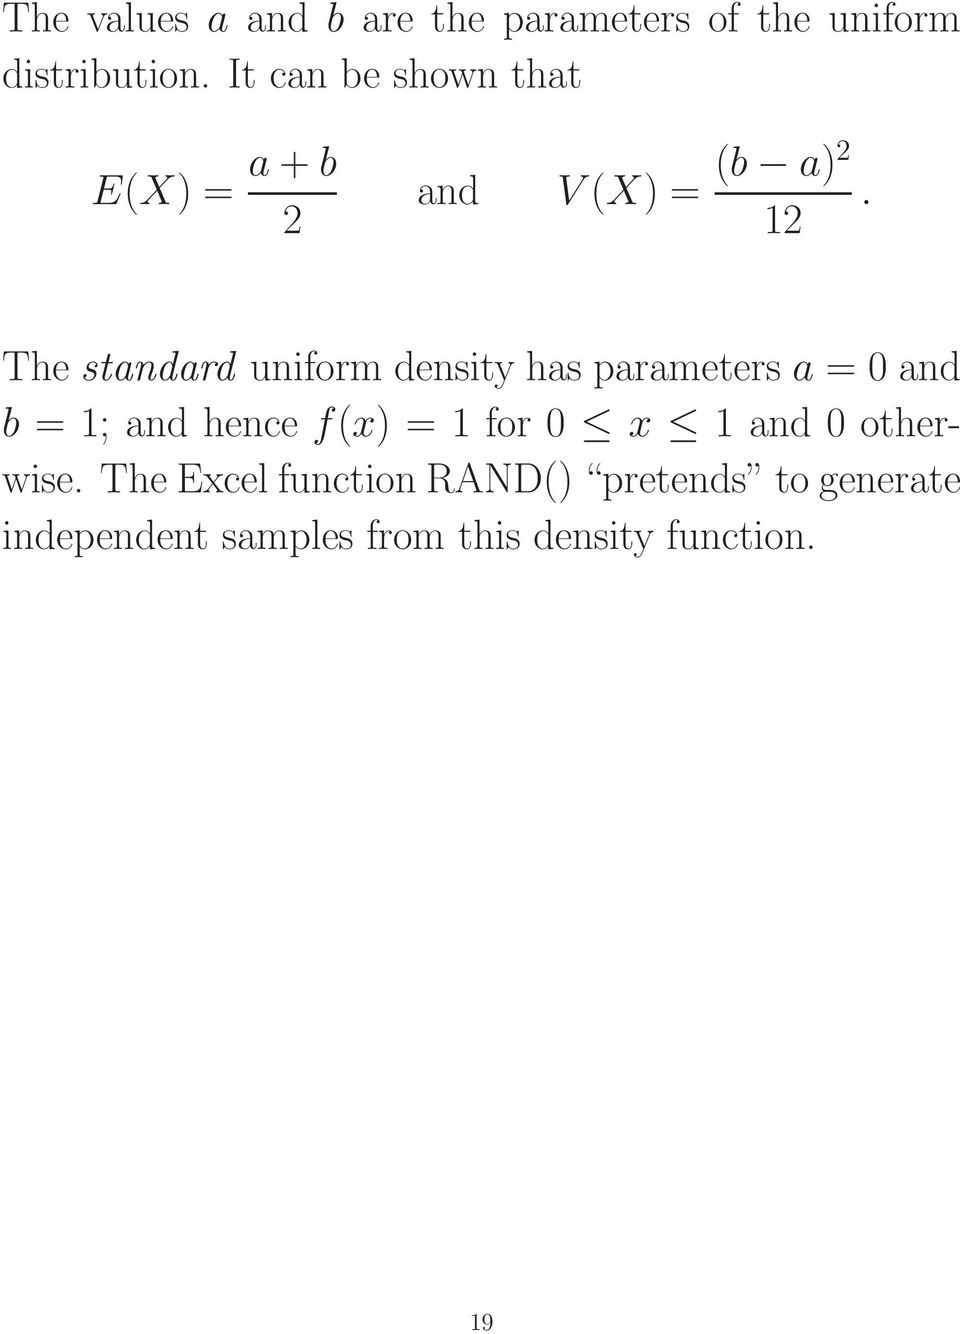 The standard uniform density has parameters a = 0 and b = 1; and hence f(x) = 1